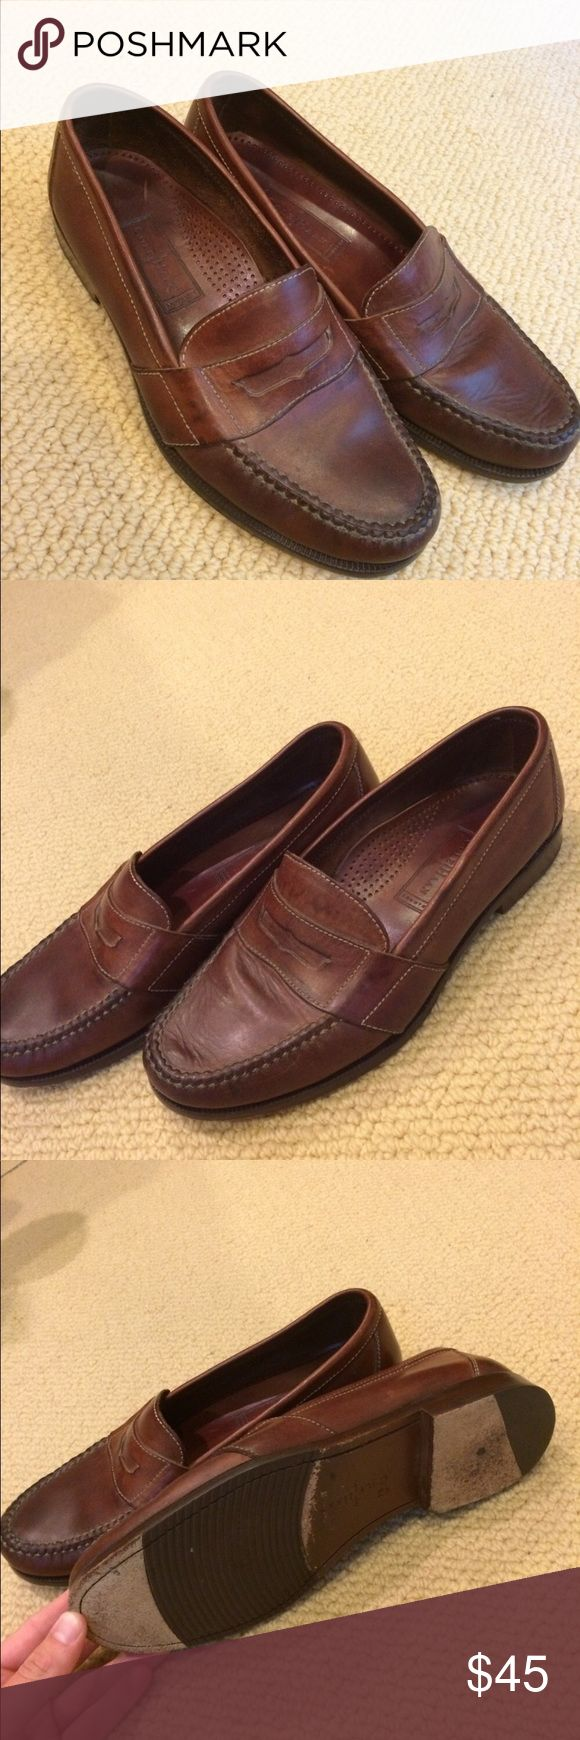 Cole Haan penny loafers Very nice penny loafers for sale go great on any outfit can be worn casual or dressy slightly worn and still I'm very good condition ! Cole Haan Shoes